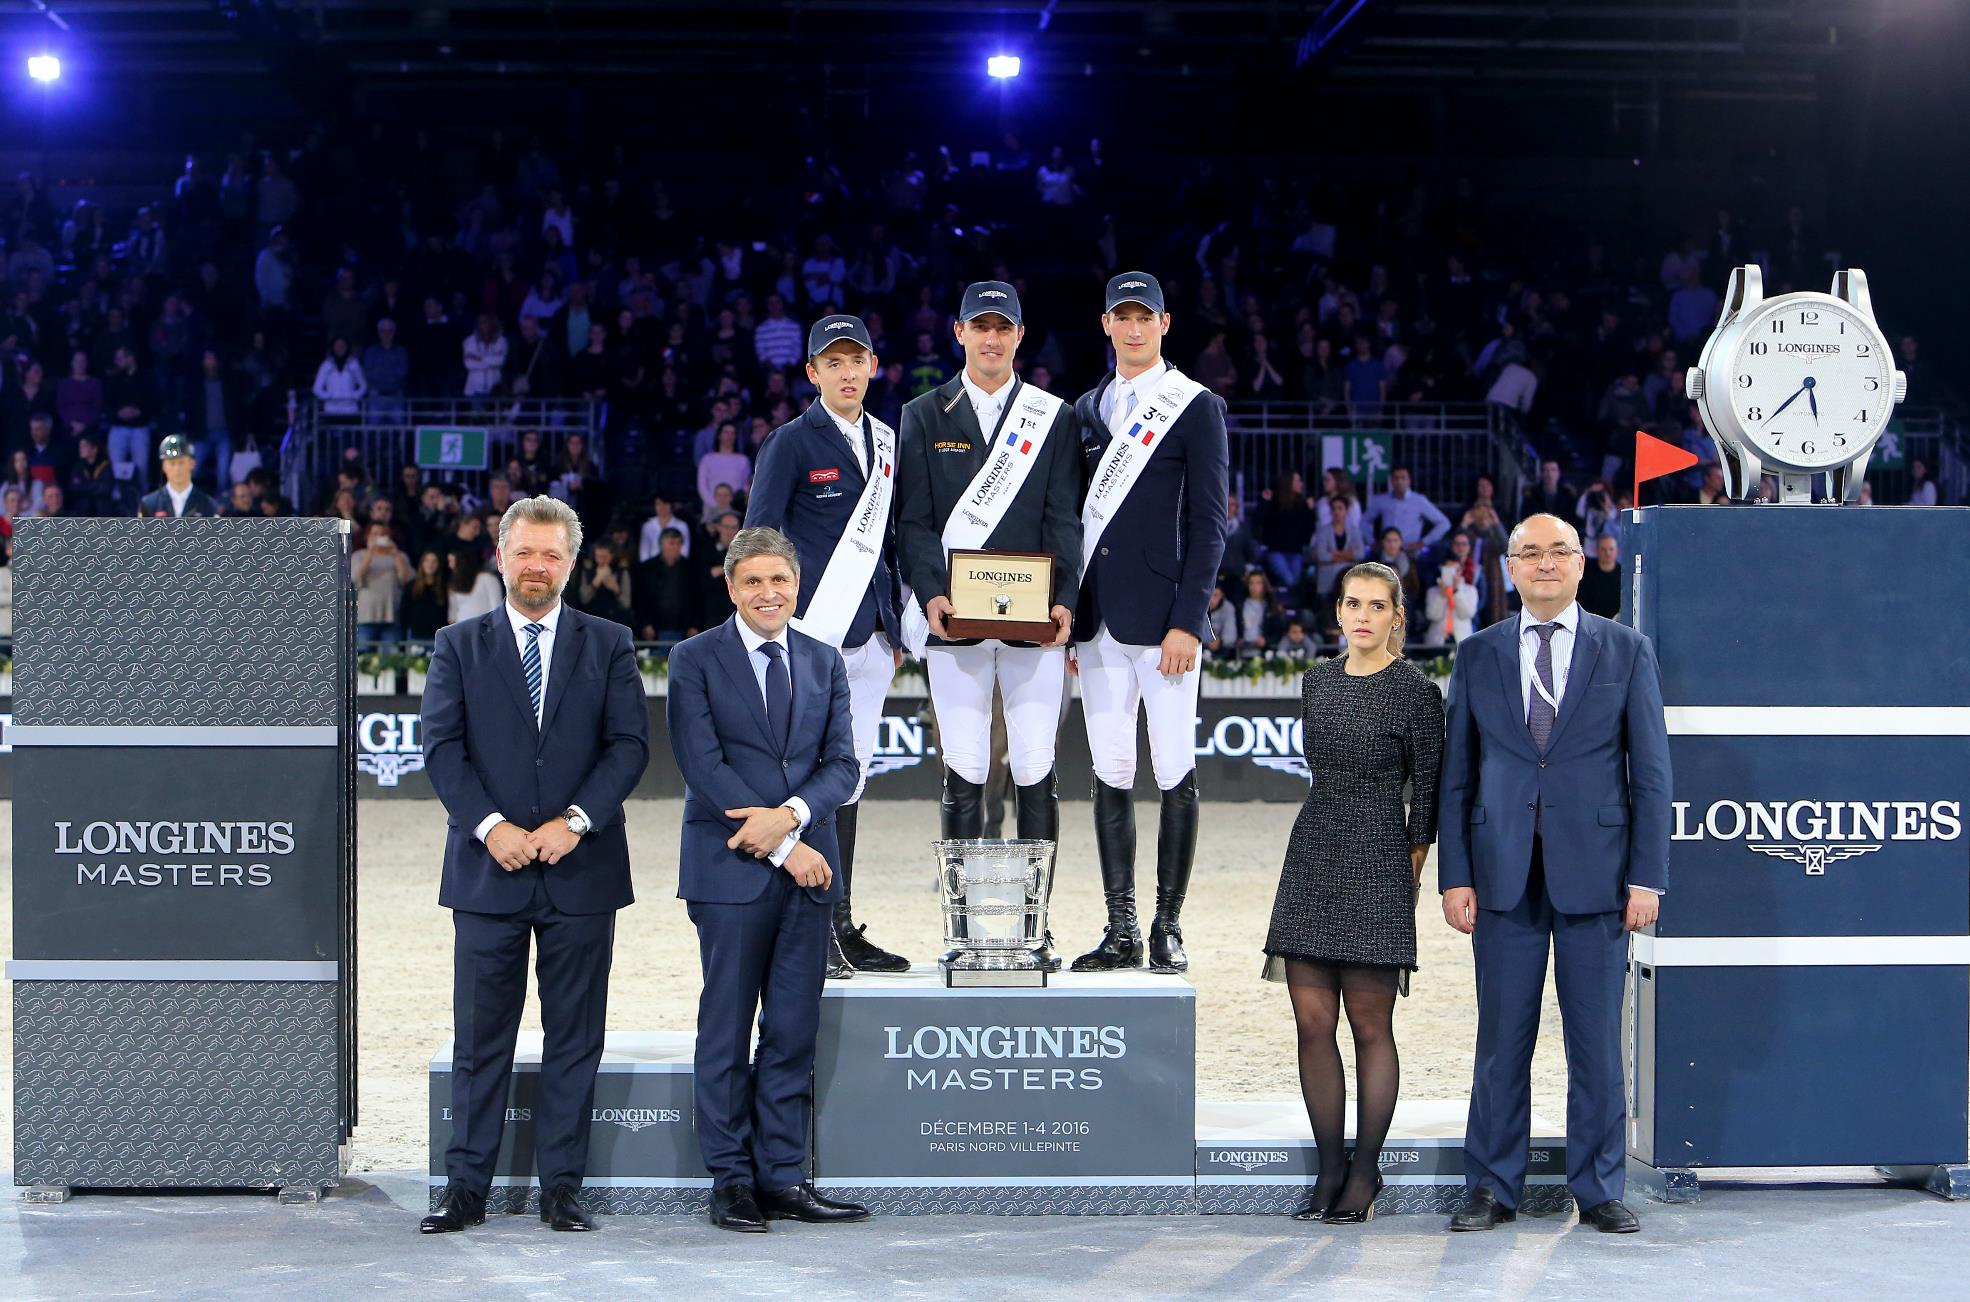 longines-masters-paris-4